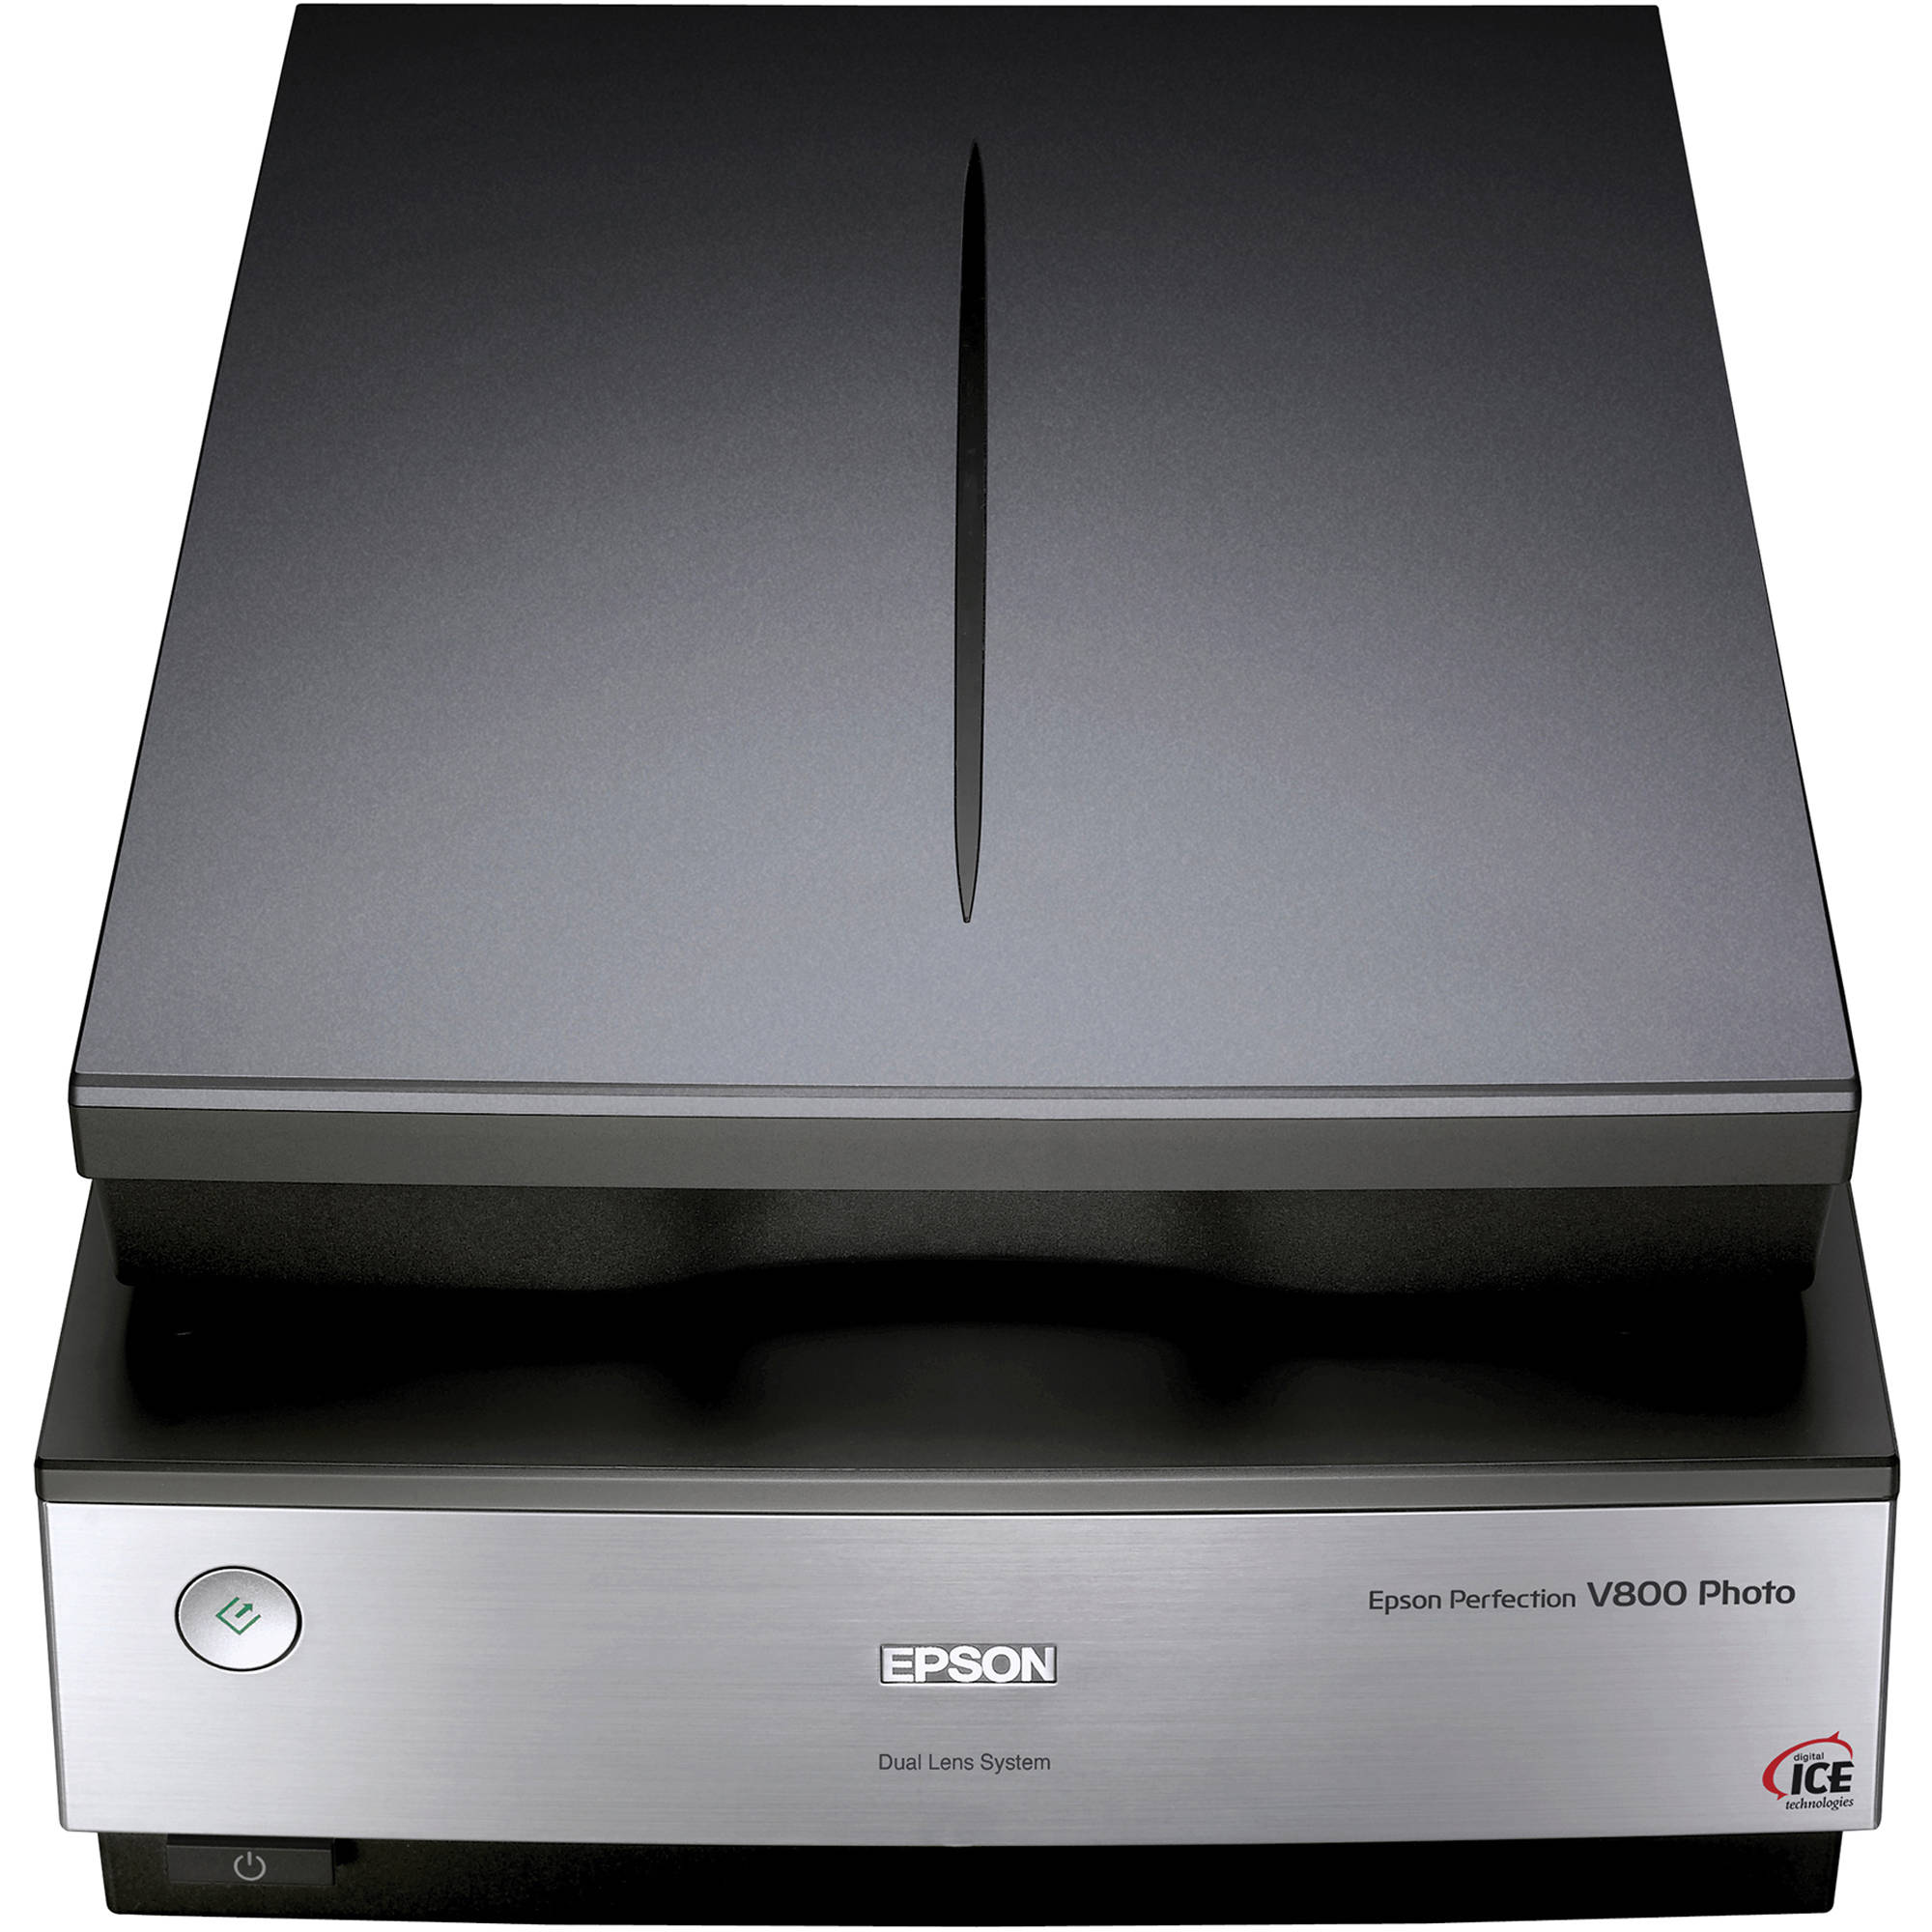 Epson Perfection 4990 Pro TWAIN Driver FREE